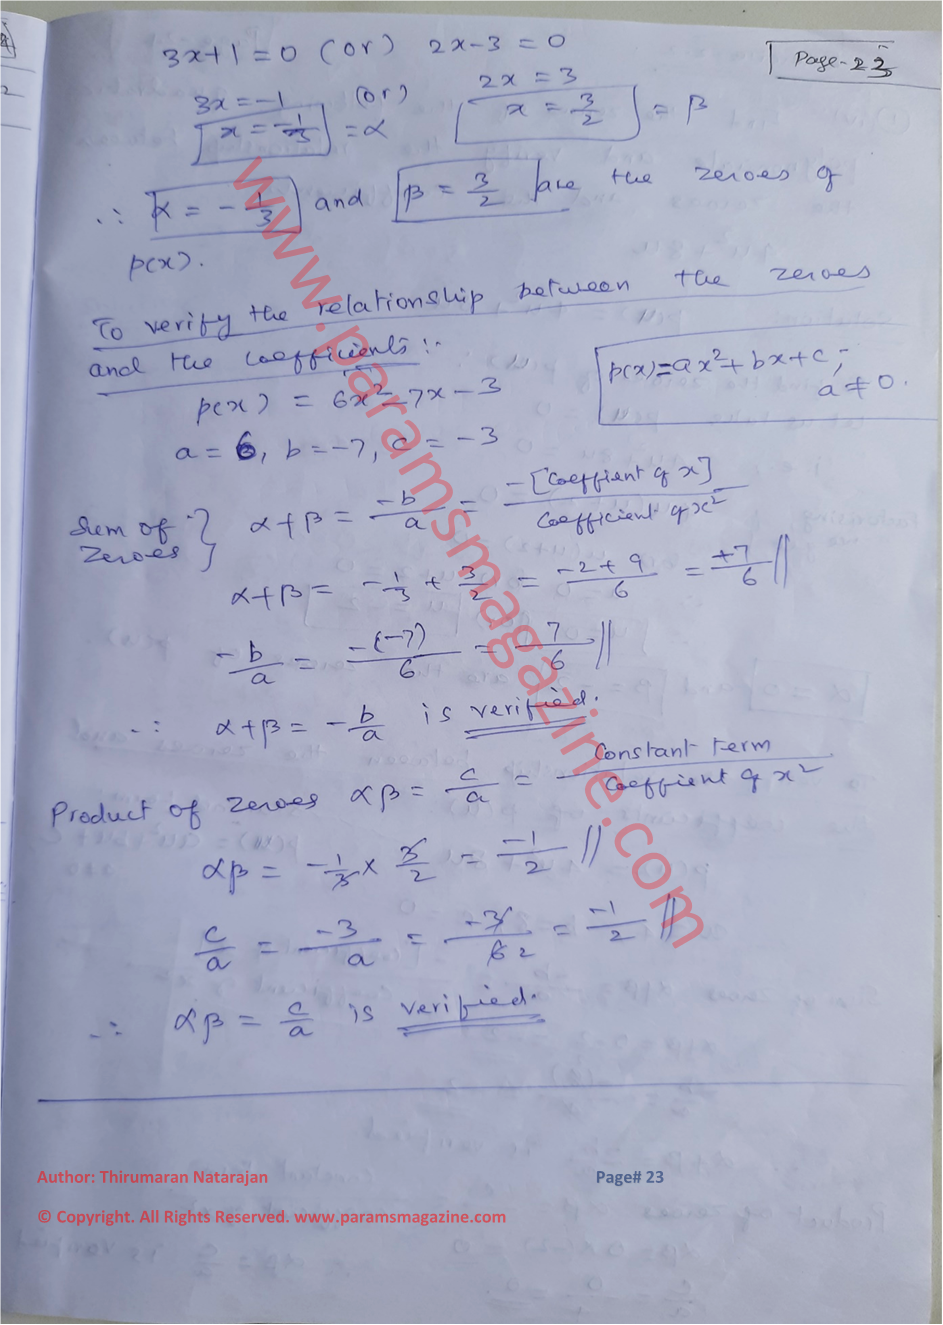 Class-10 - Polynomials - Notes - Page-23